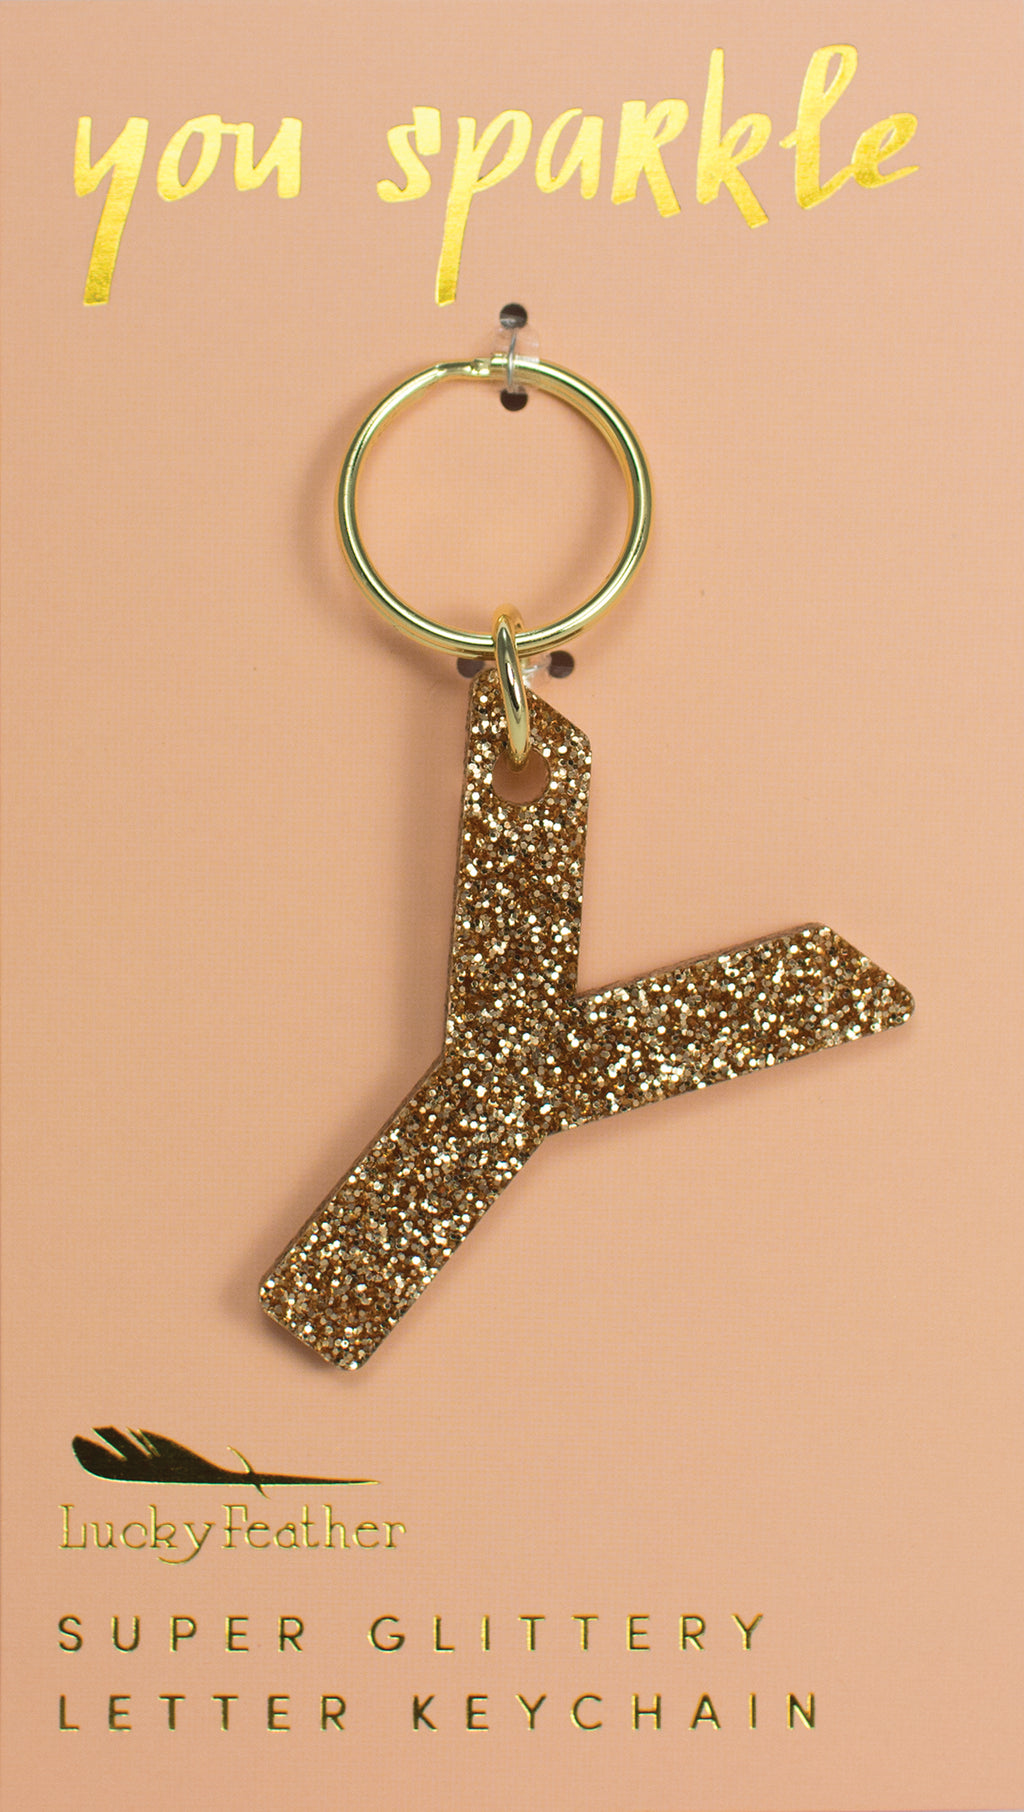 Glitter Letter Keychain - Y